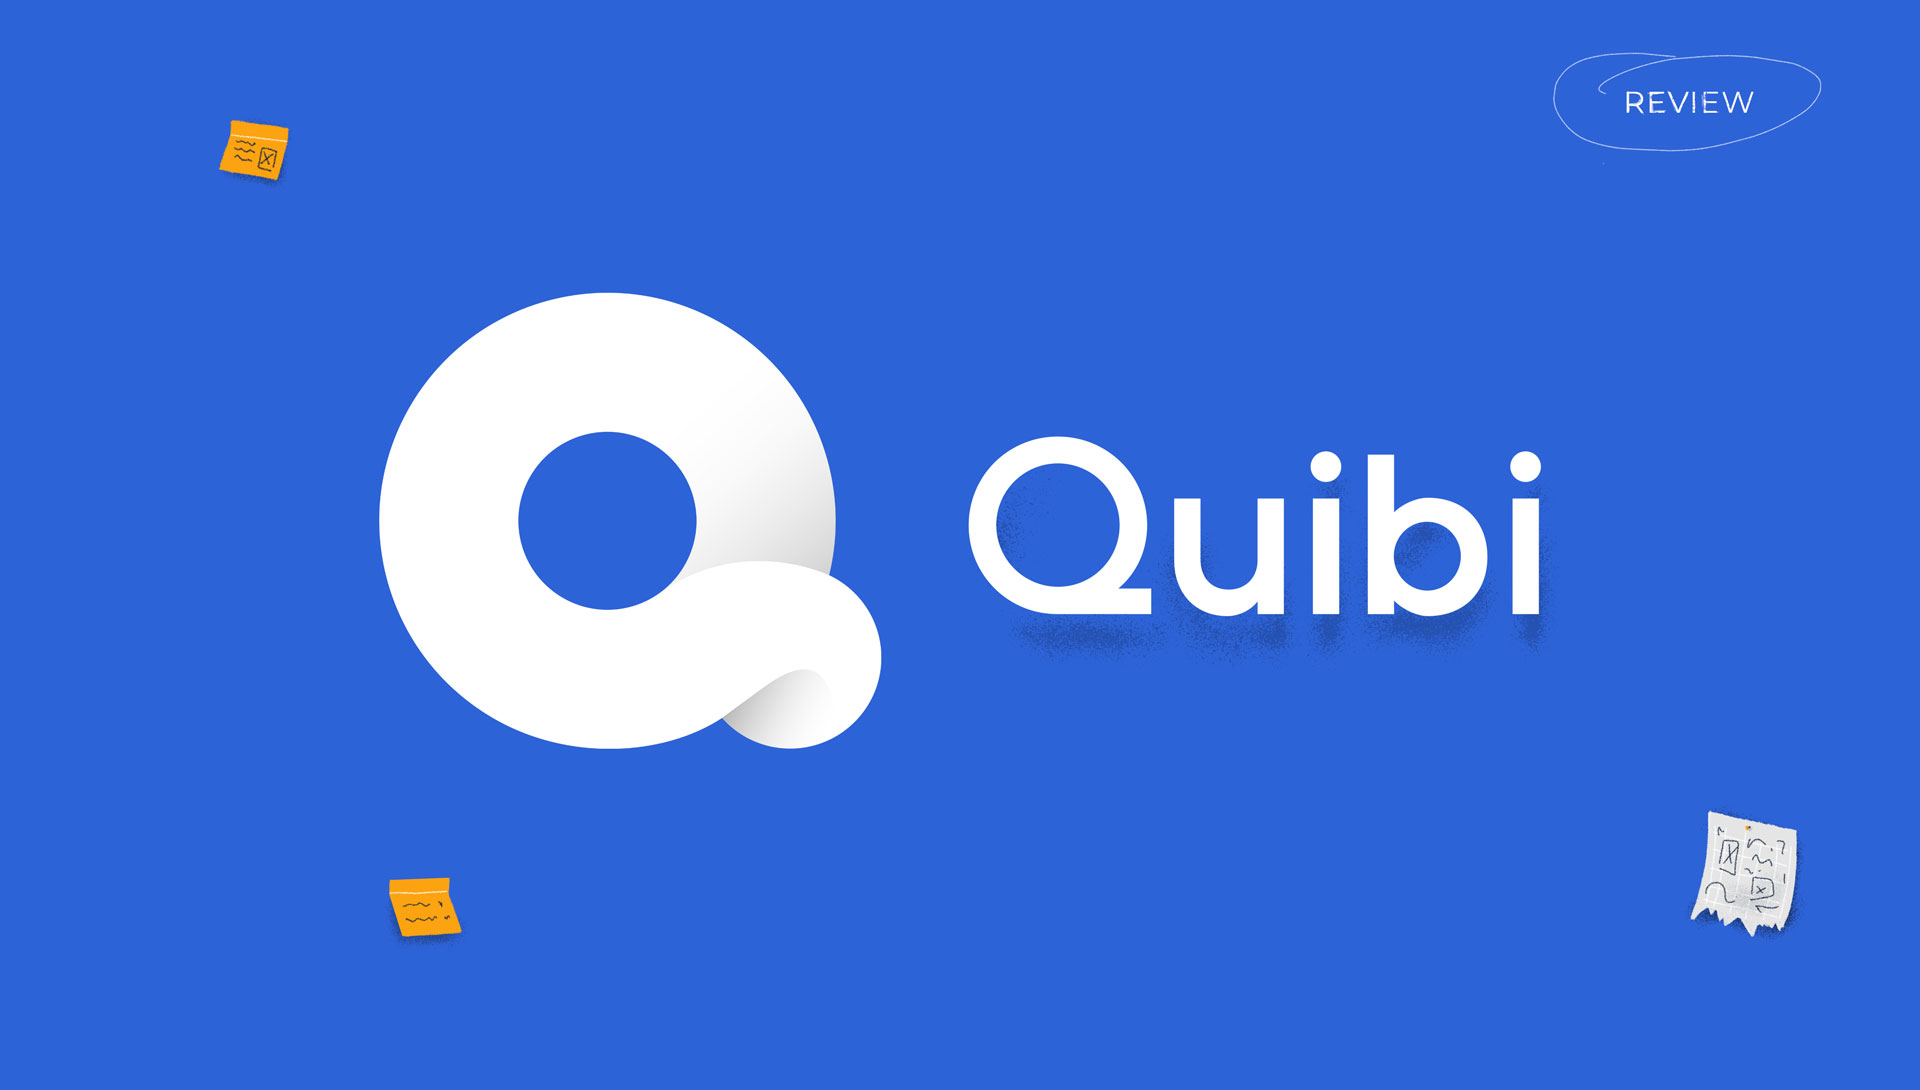 Quibi App Review on the UX Experience